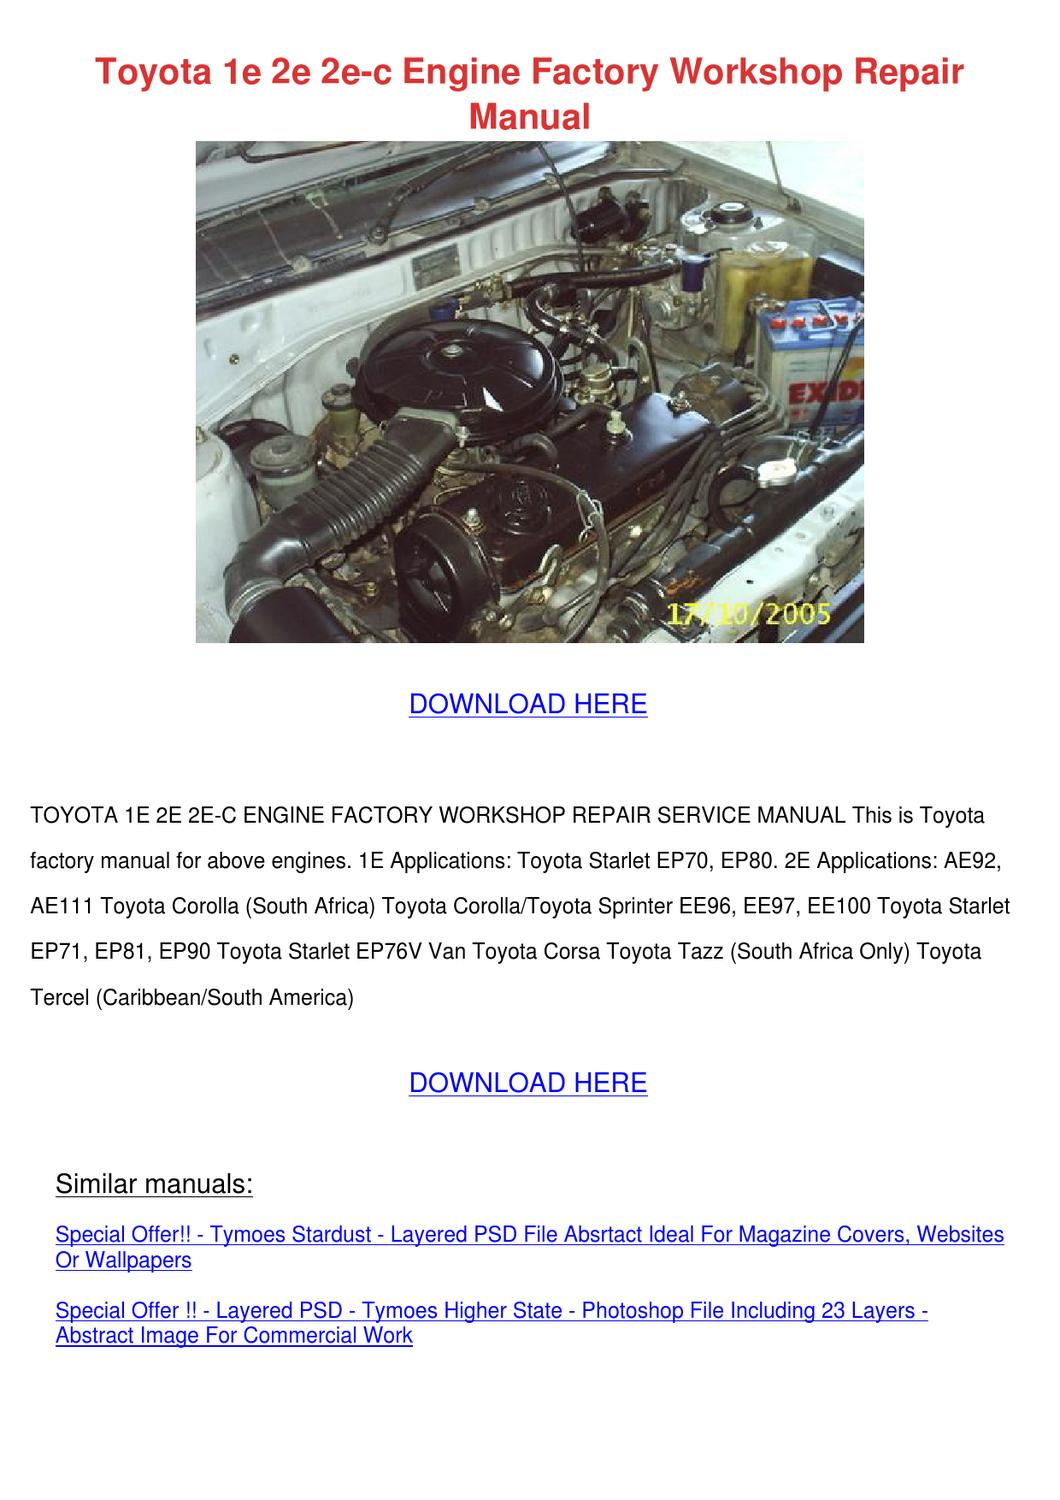 Toyota 1e 2e 2e C Engine Factory Workshop Rep by KristianHuntington - issuu